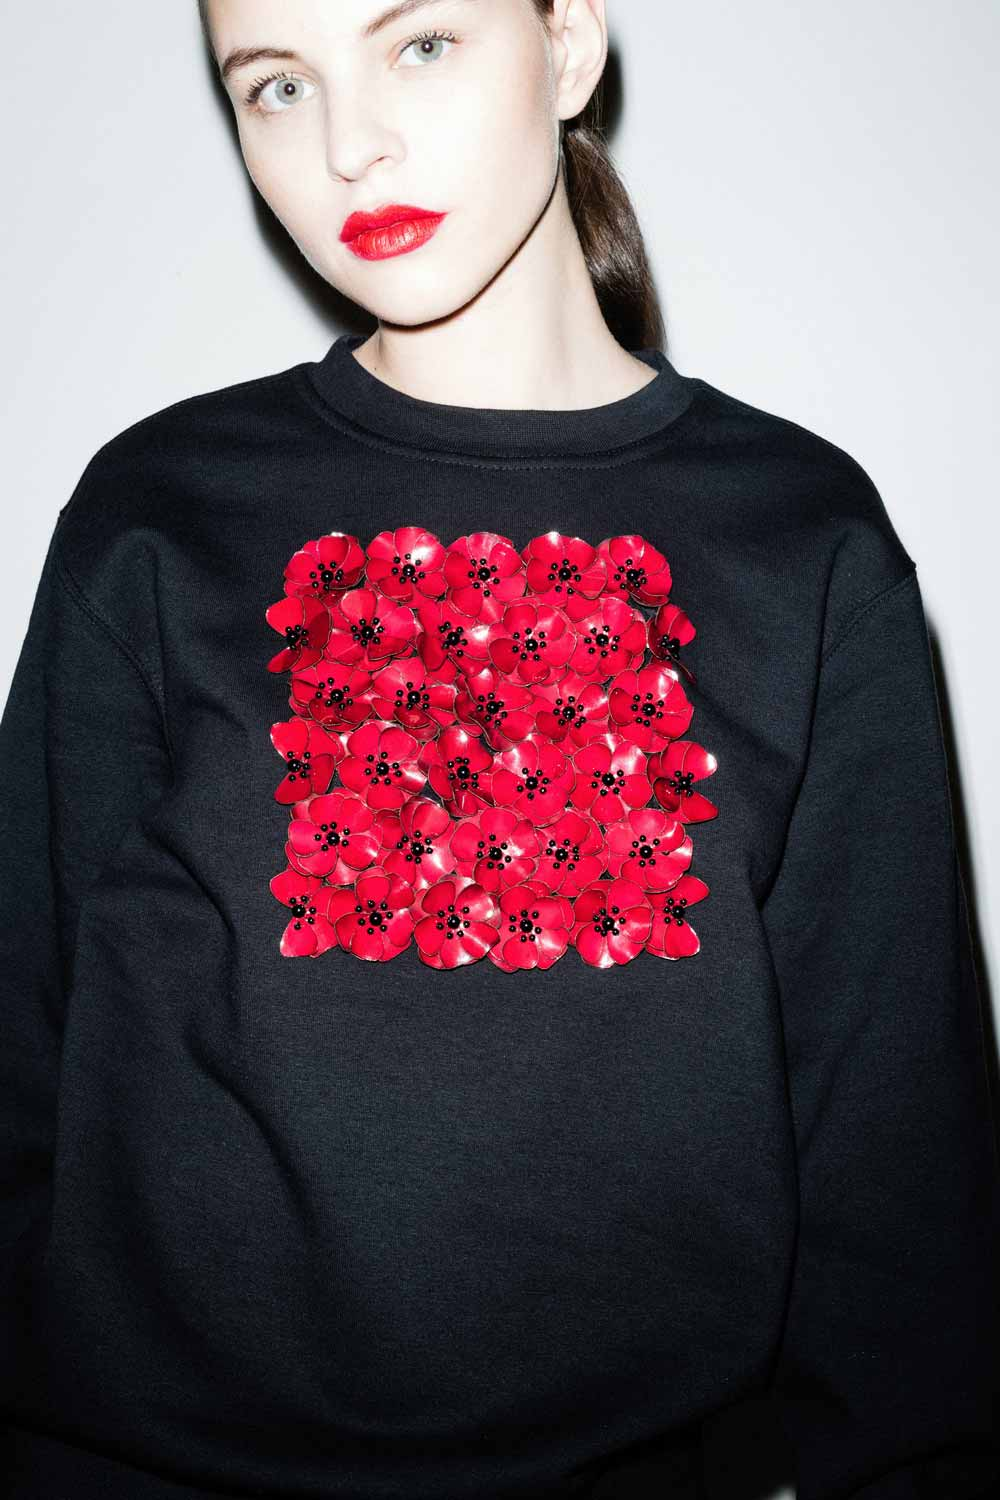 fflag-sweatshirt-poppies-ornement-fleurs-sequins-grenat4